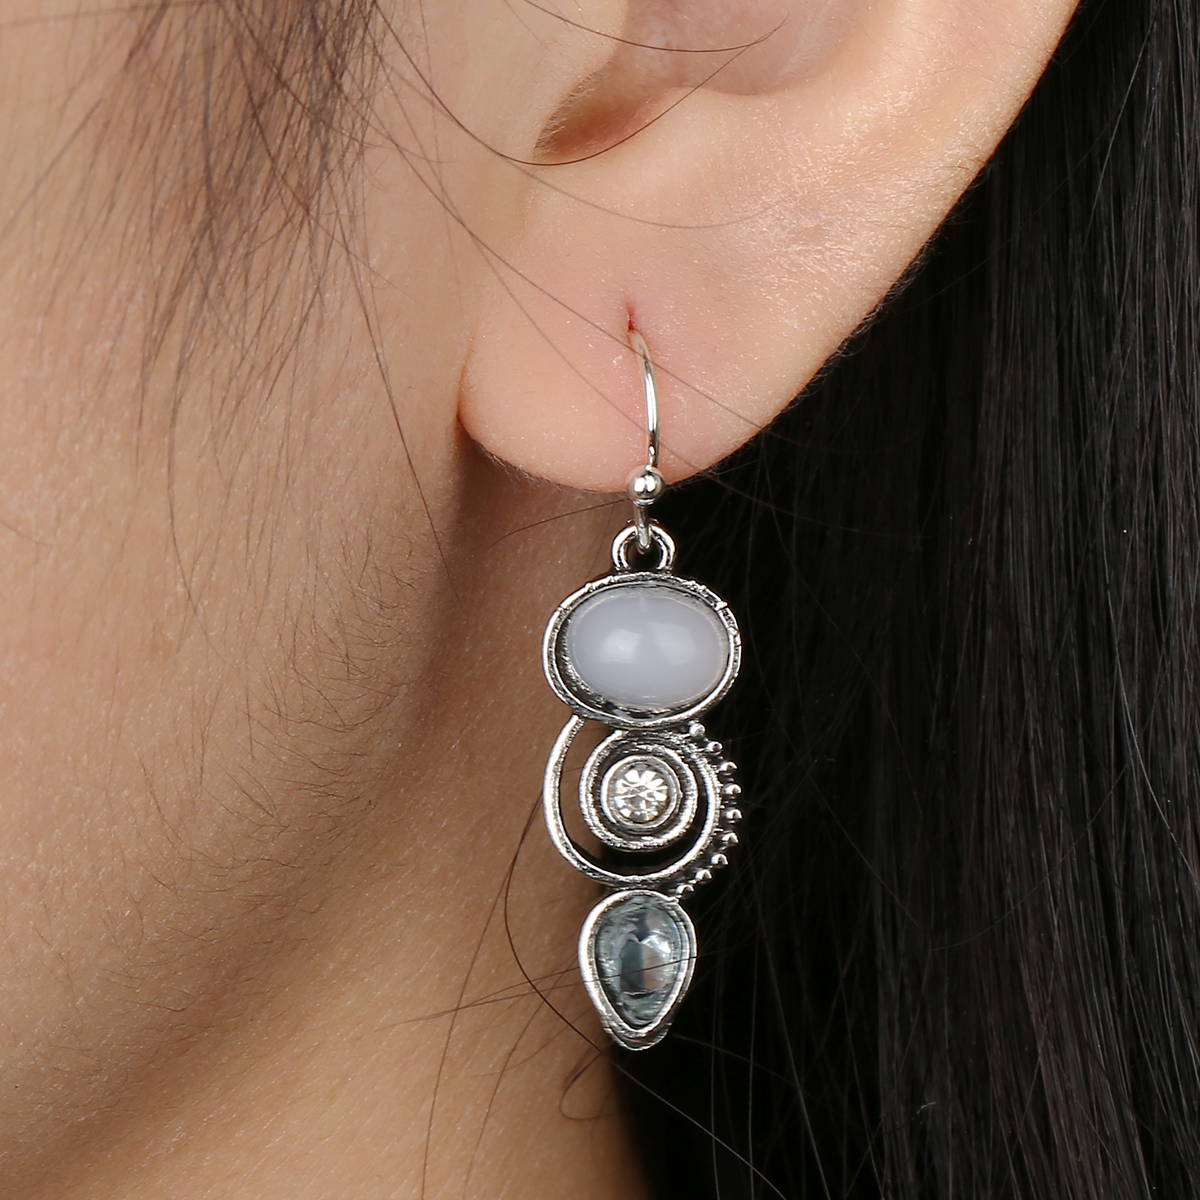 Bohemia Vintage Hollow Spiral Round Drop Earrings Blue Crystal Dangle Earrings Retro Charms Sexy Womens' Jewelry Gifts